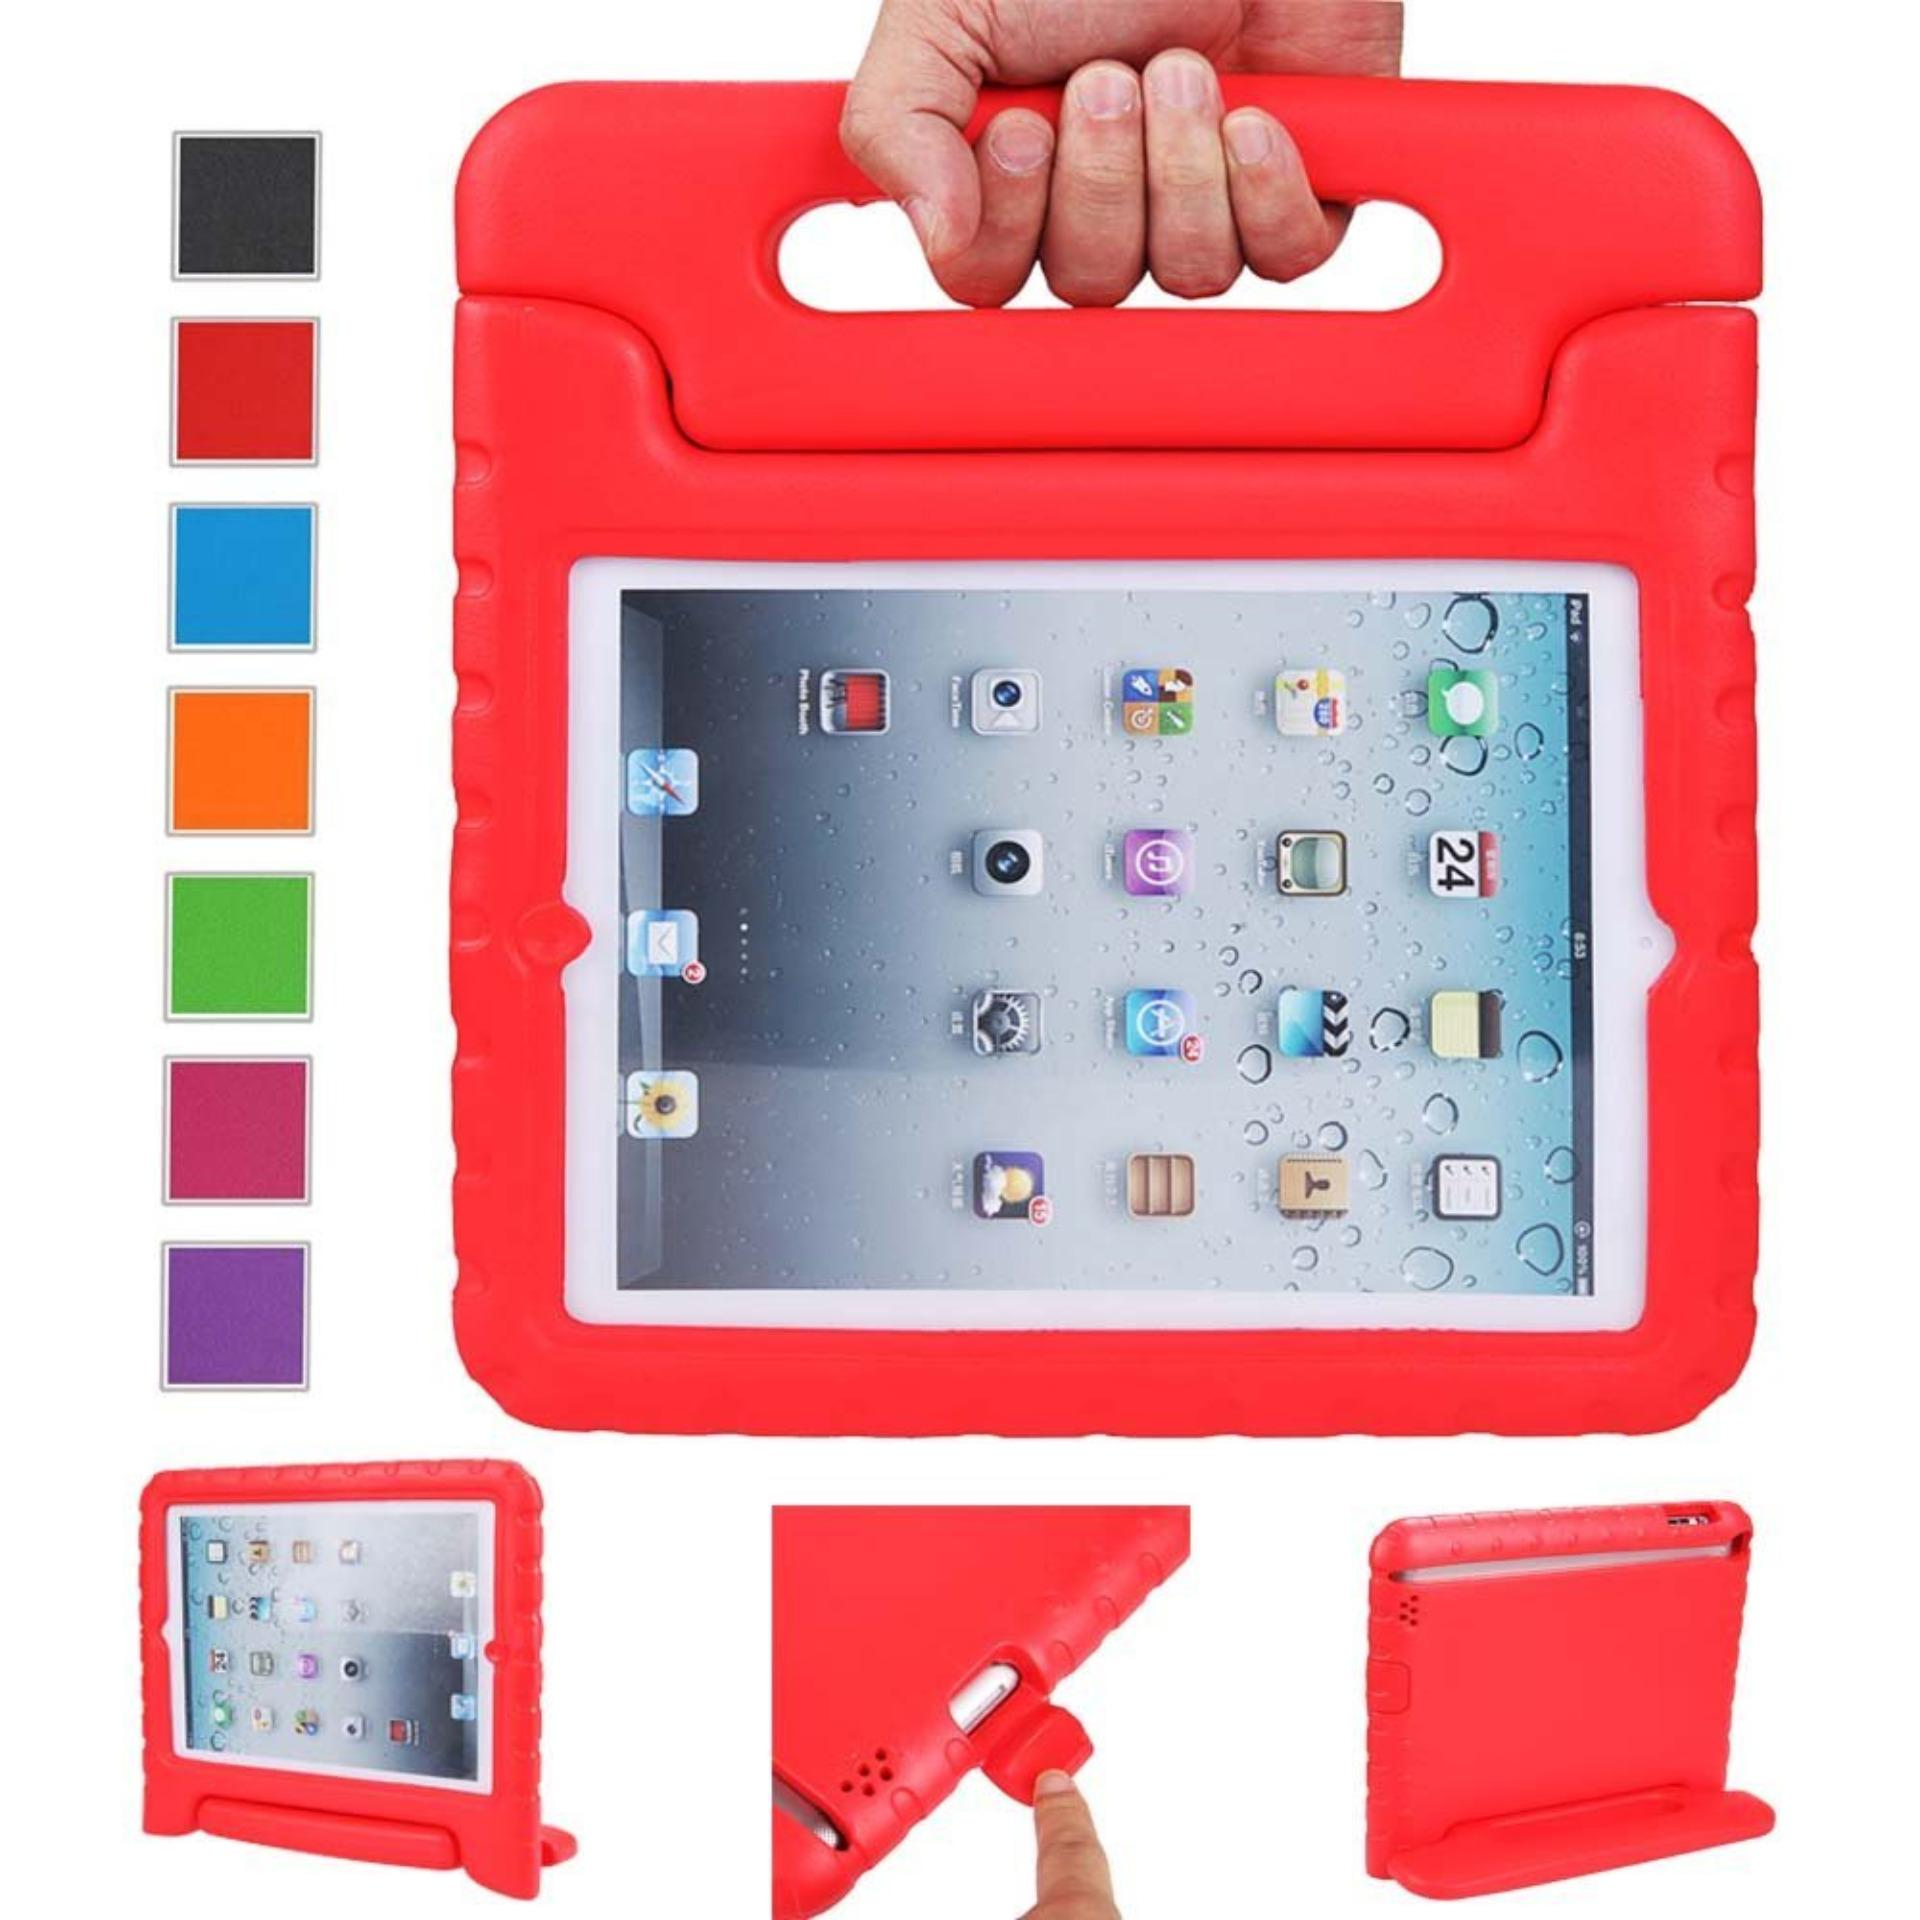 Top Rated Welink Apple Ipad 2 3 4 Eva Case Shockproof Case Light Weight Kids Case Super Protection Cover Handle Stand Case For Apple Ipad 2 3 4 Red